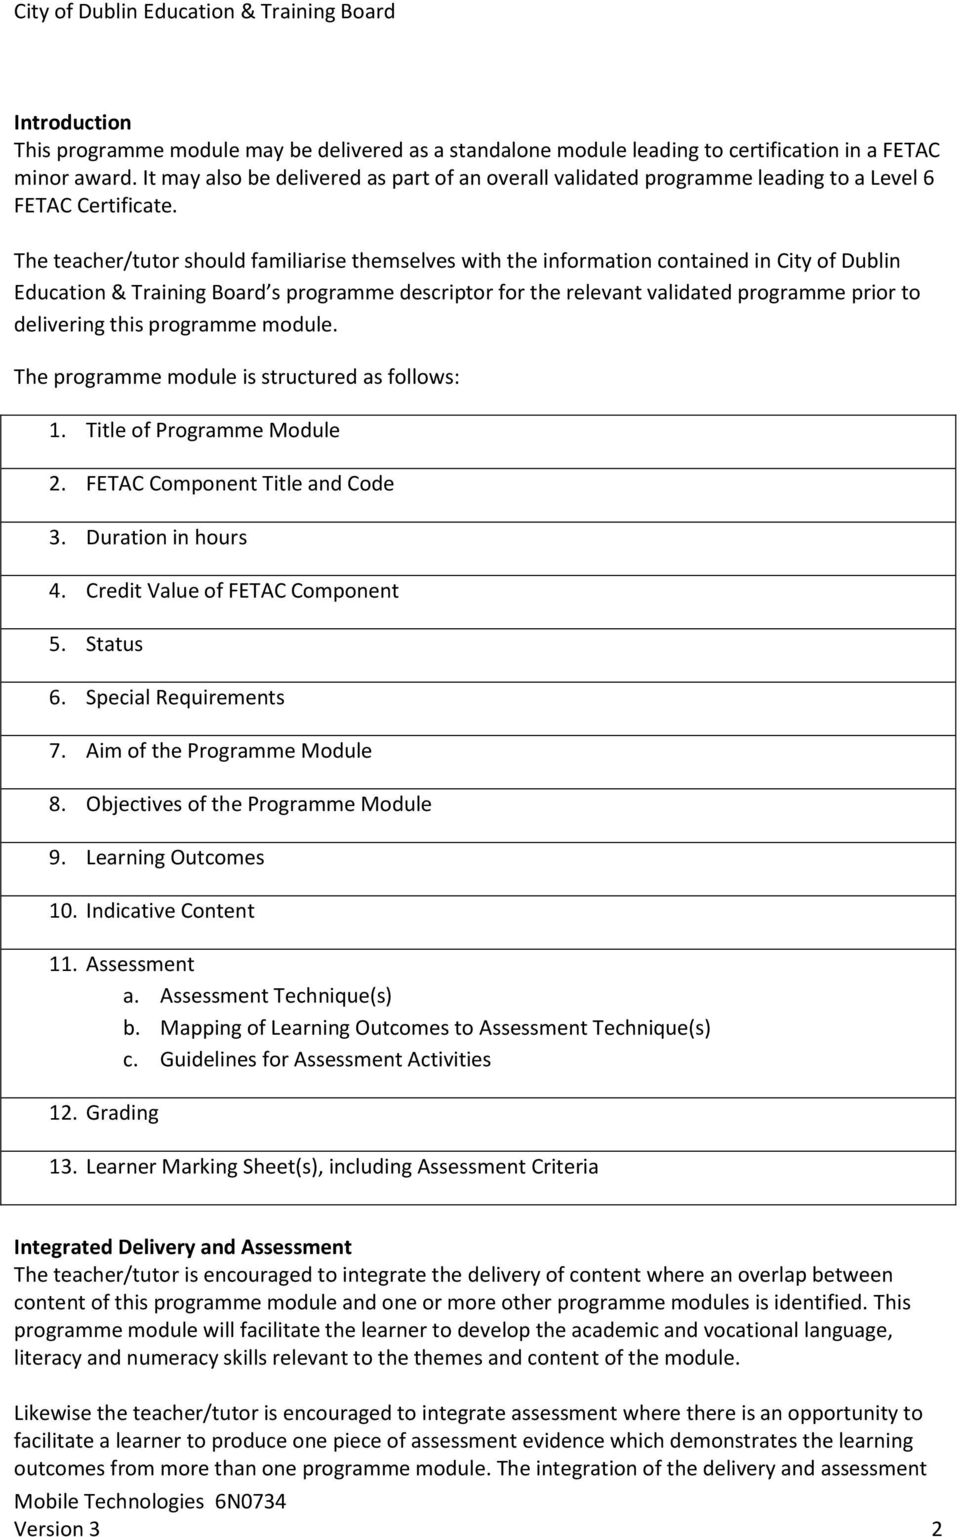 The teacher/tutor should familiarise themselves with the information contained in City of Dublin Education & Training Board s programme descriptor for the relevant validated programme prior to